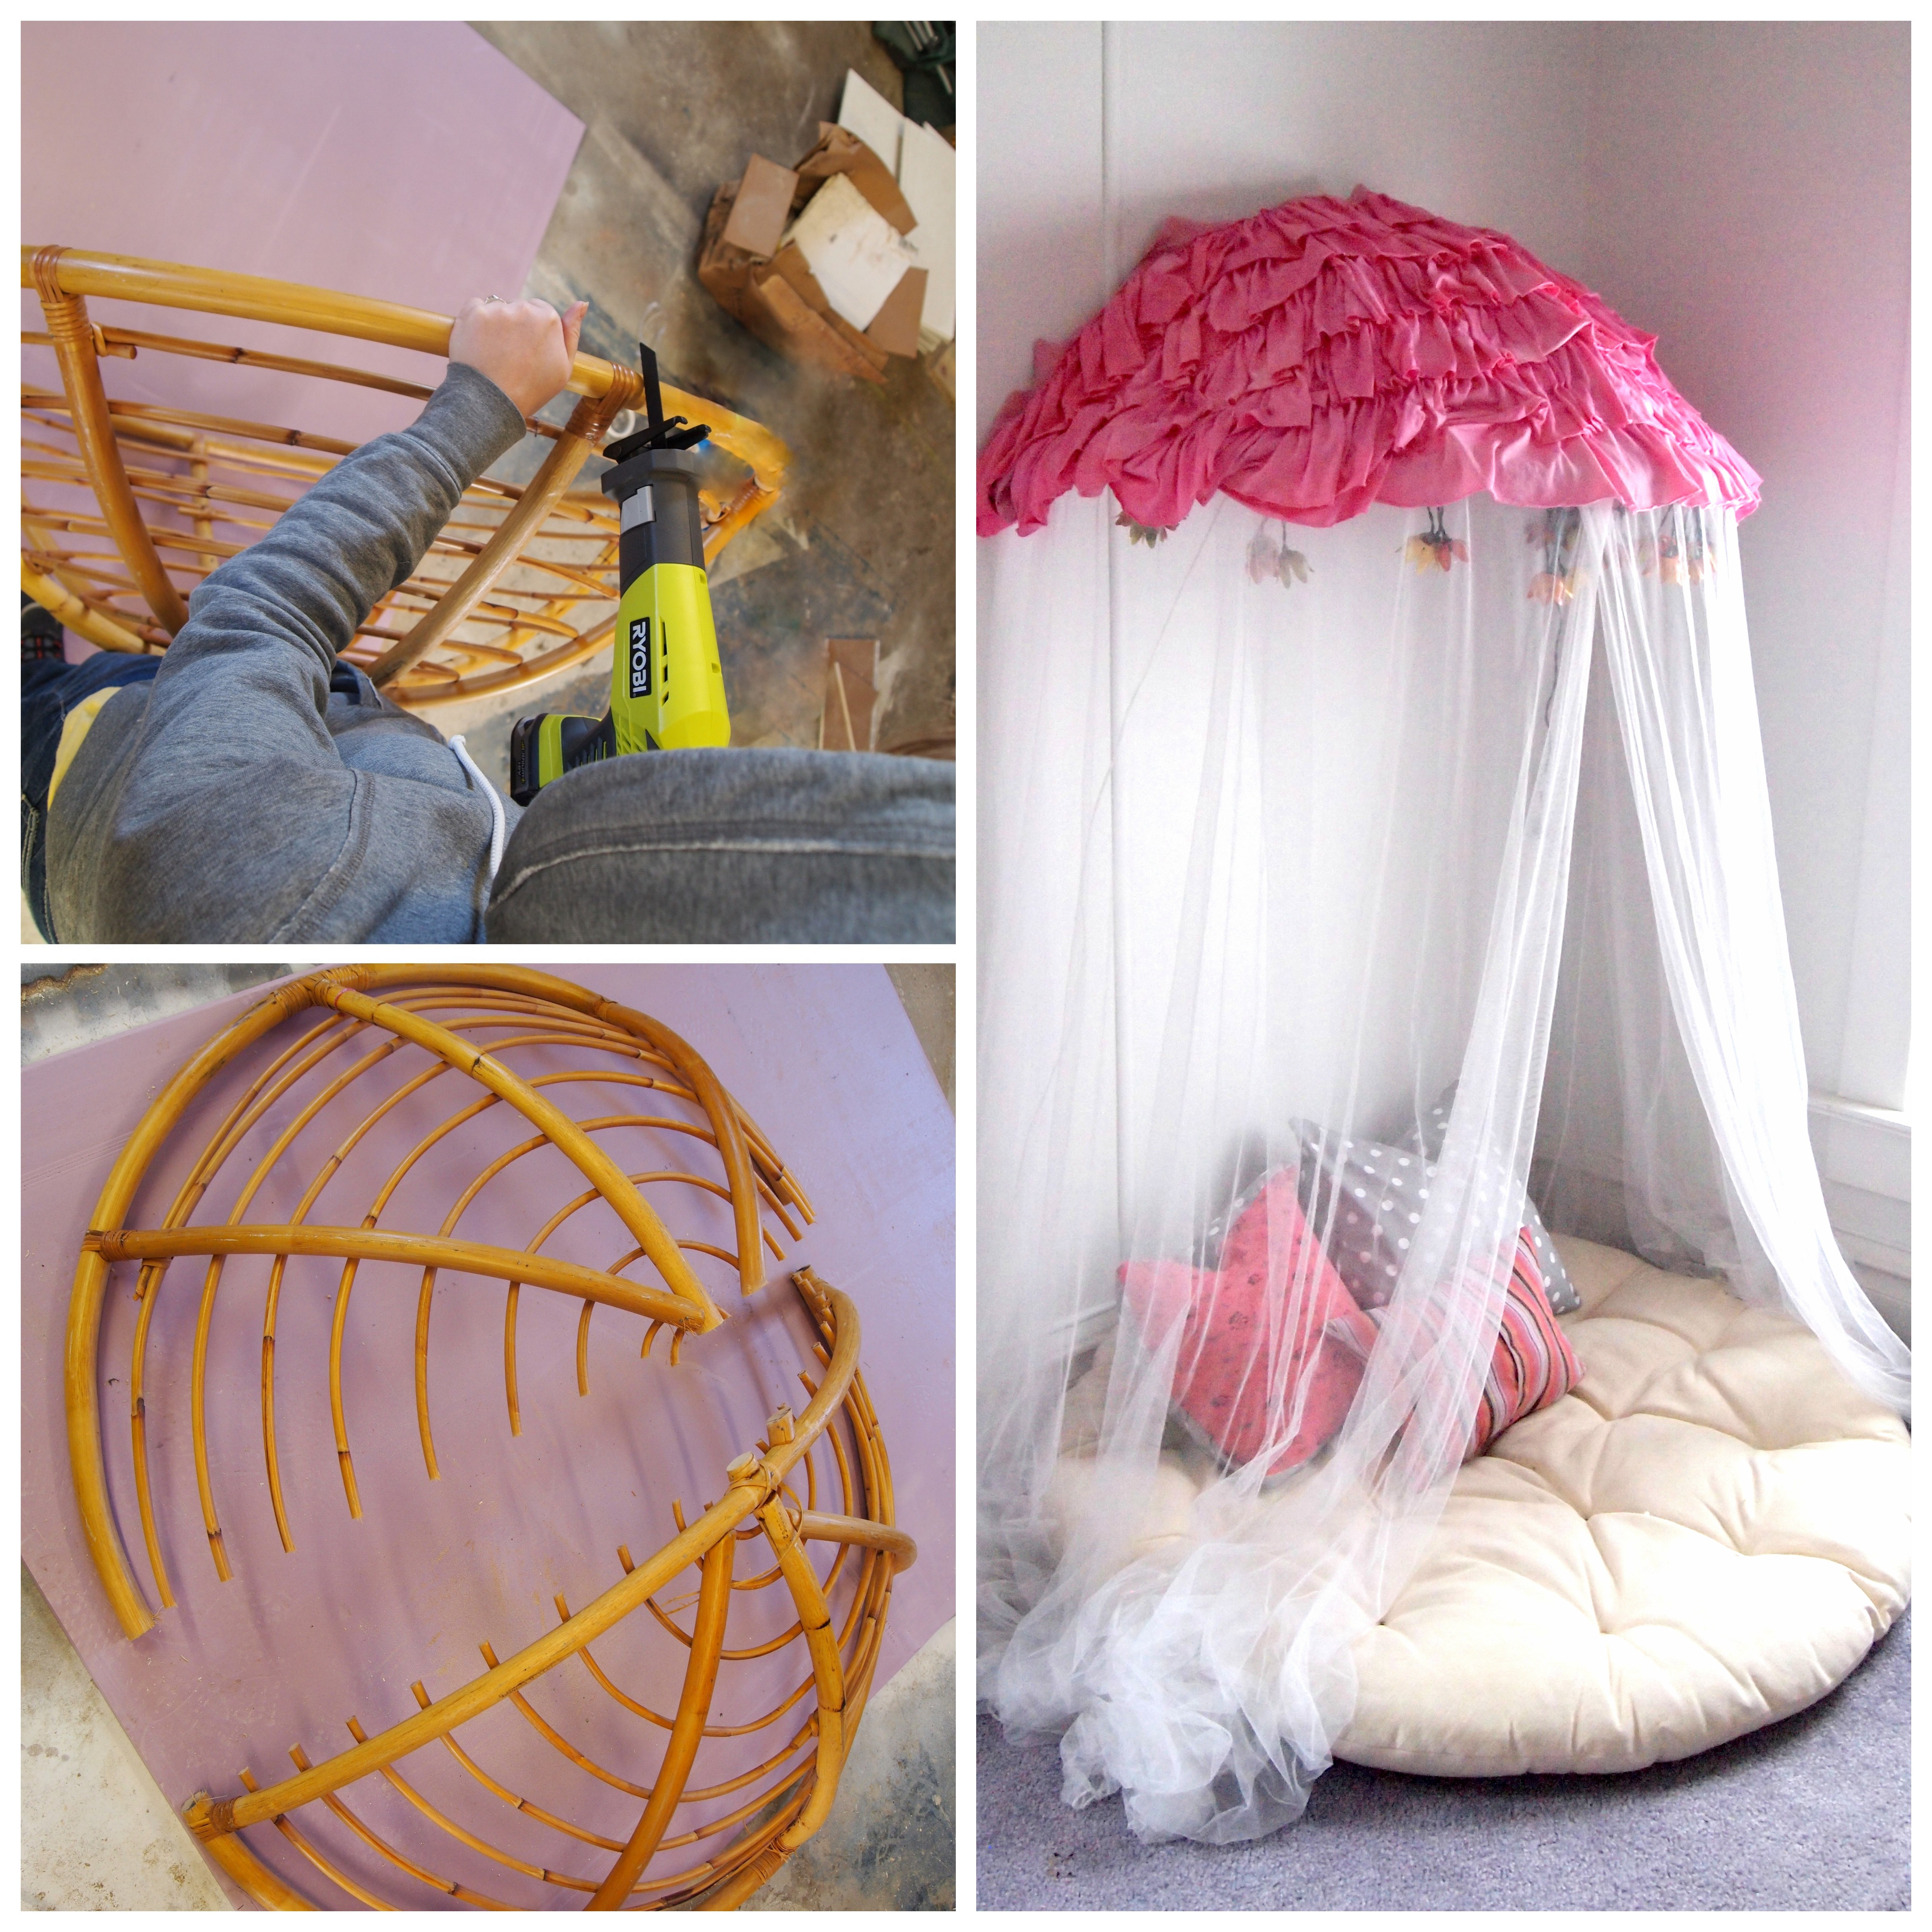 Turn Your Old Papasan into a Canopy Reading Nook  Reality